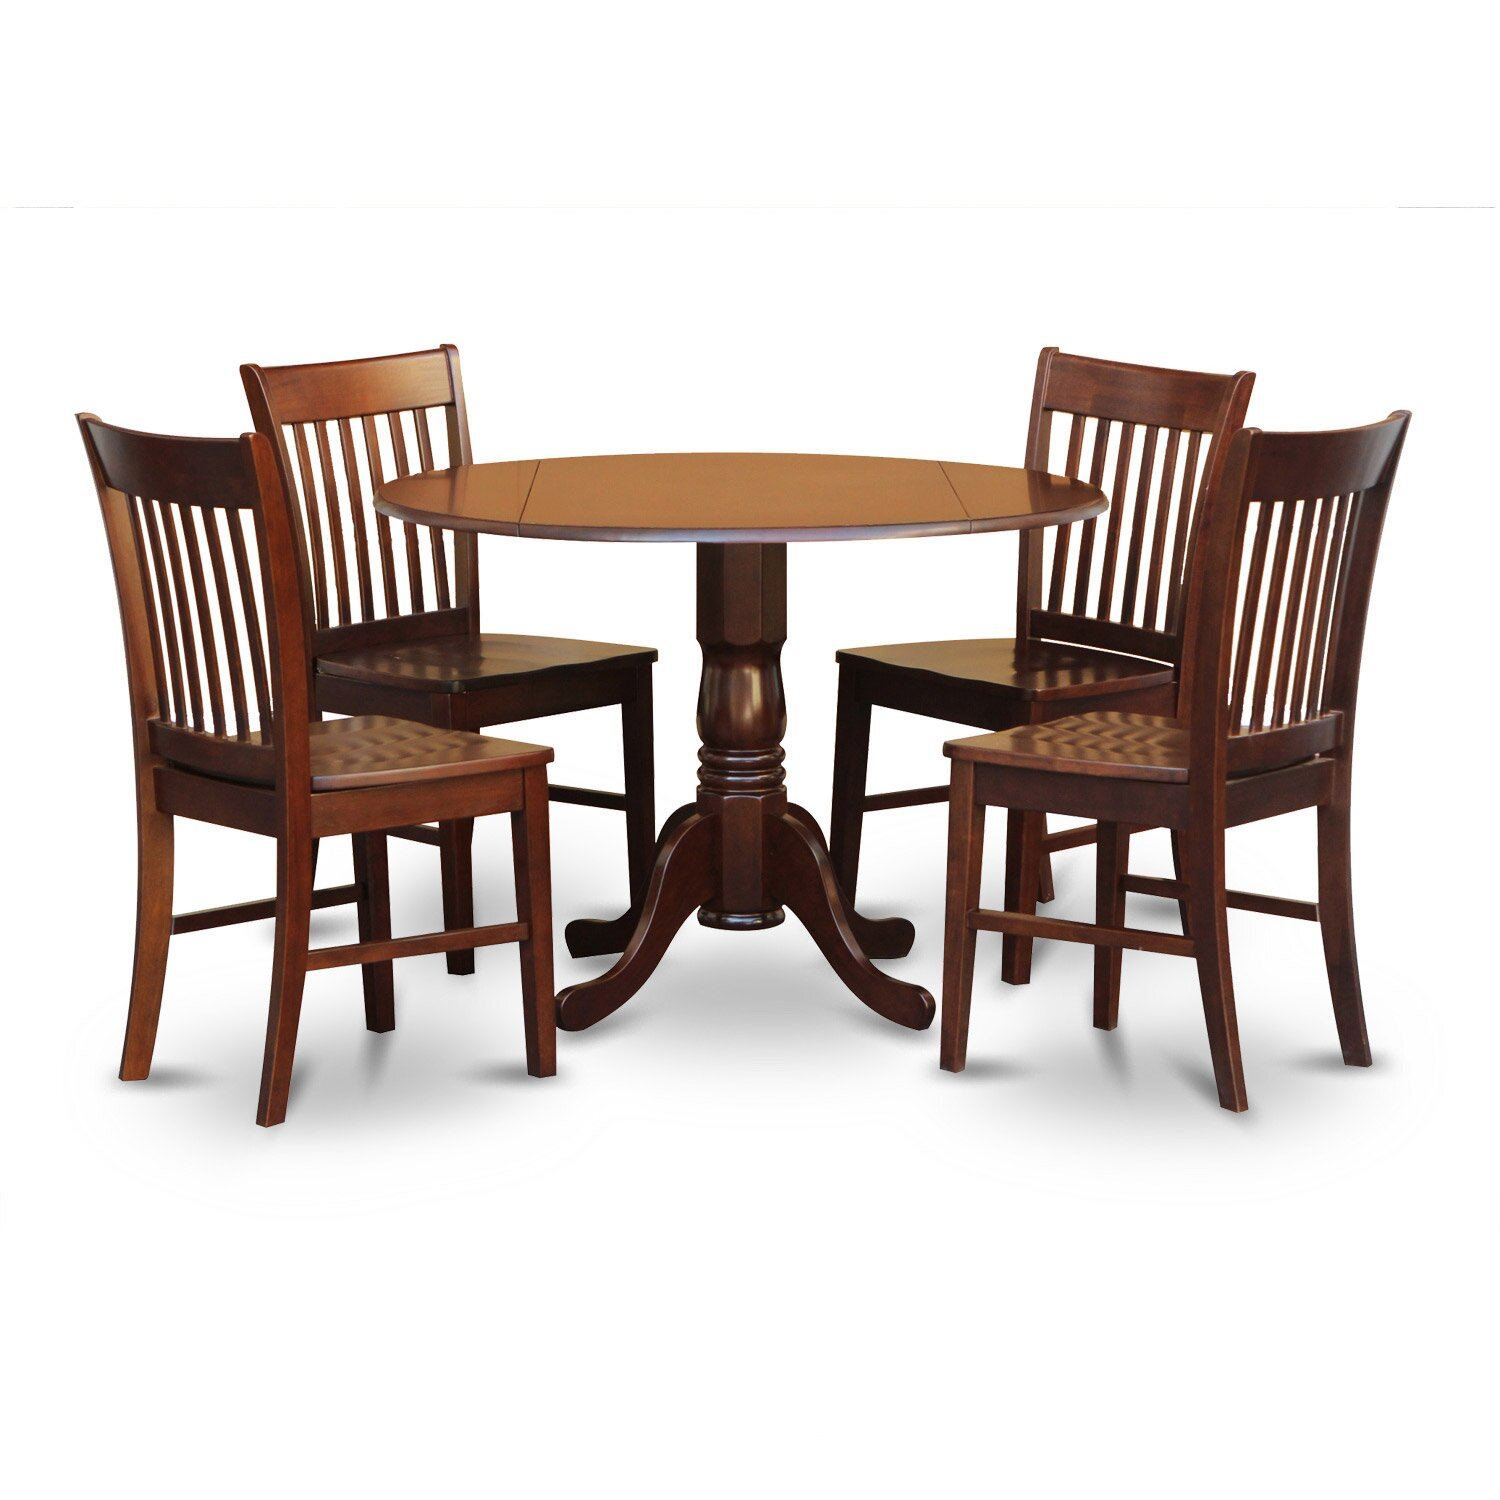 Round Kitchen Table And Chairs: East West Dublin 5 Piece Dining Set & Reviews